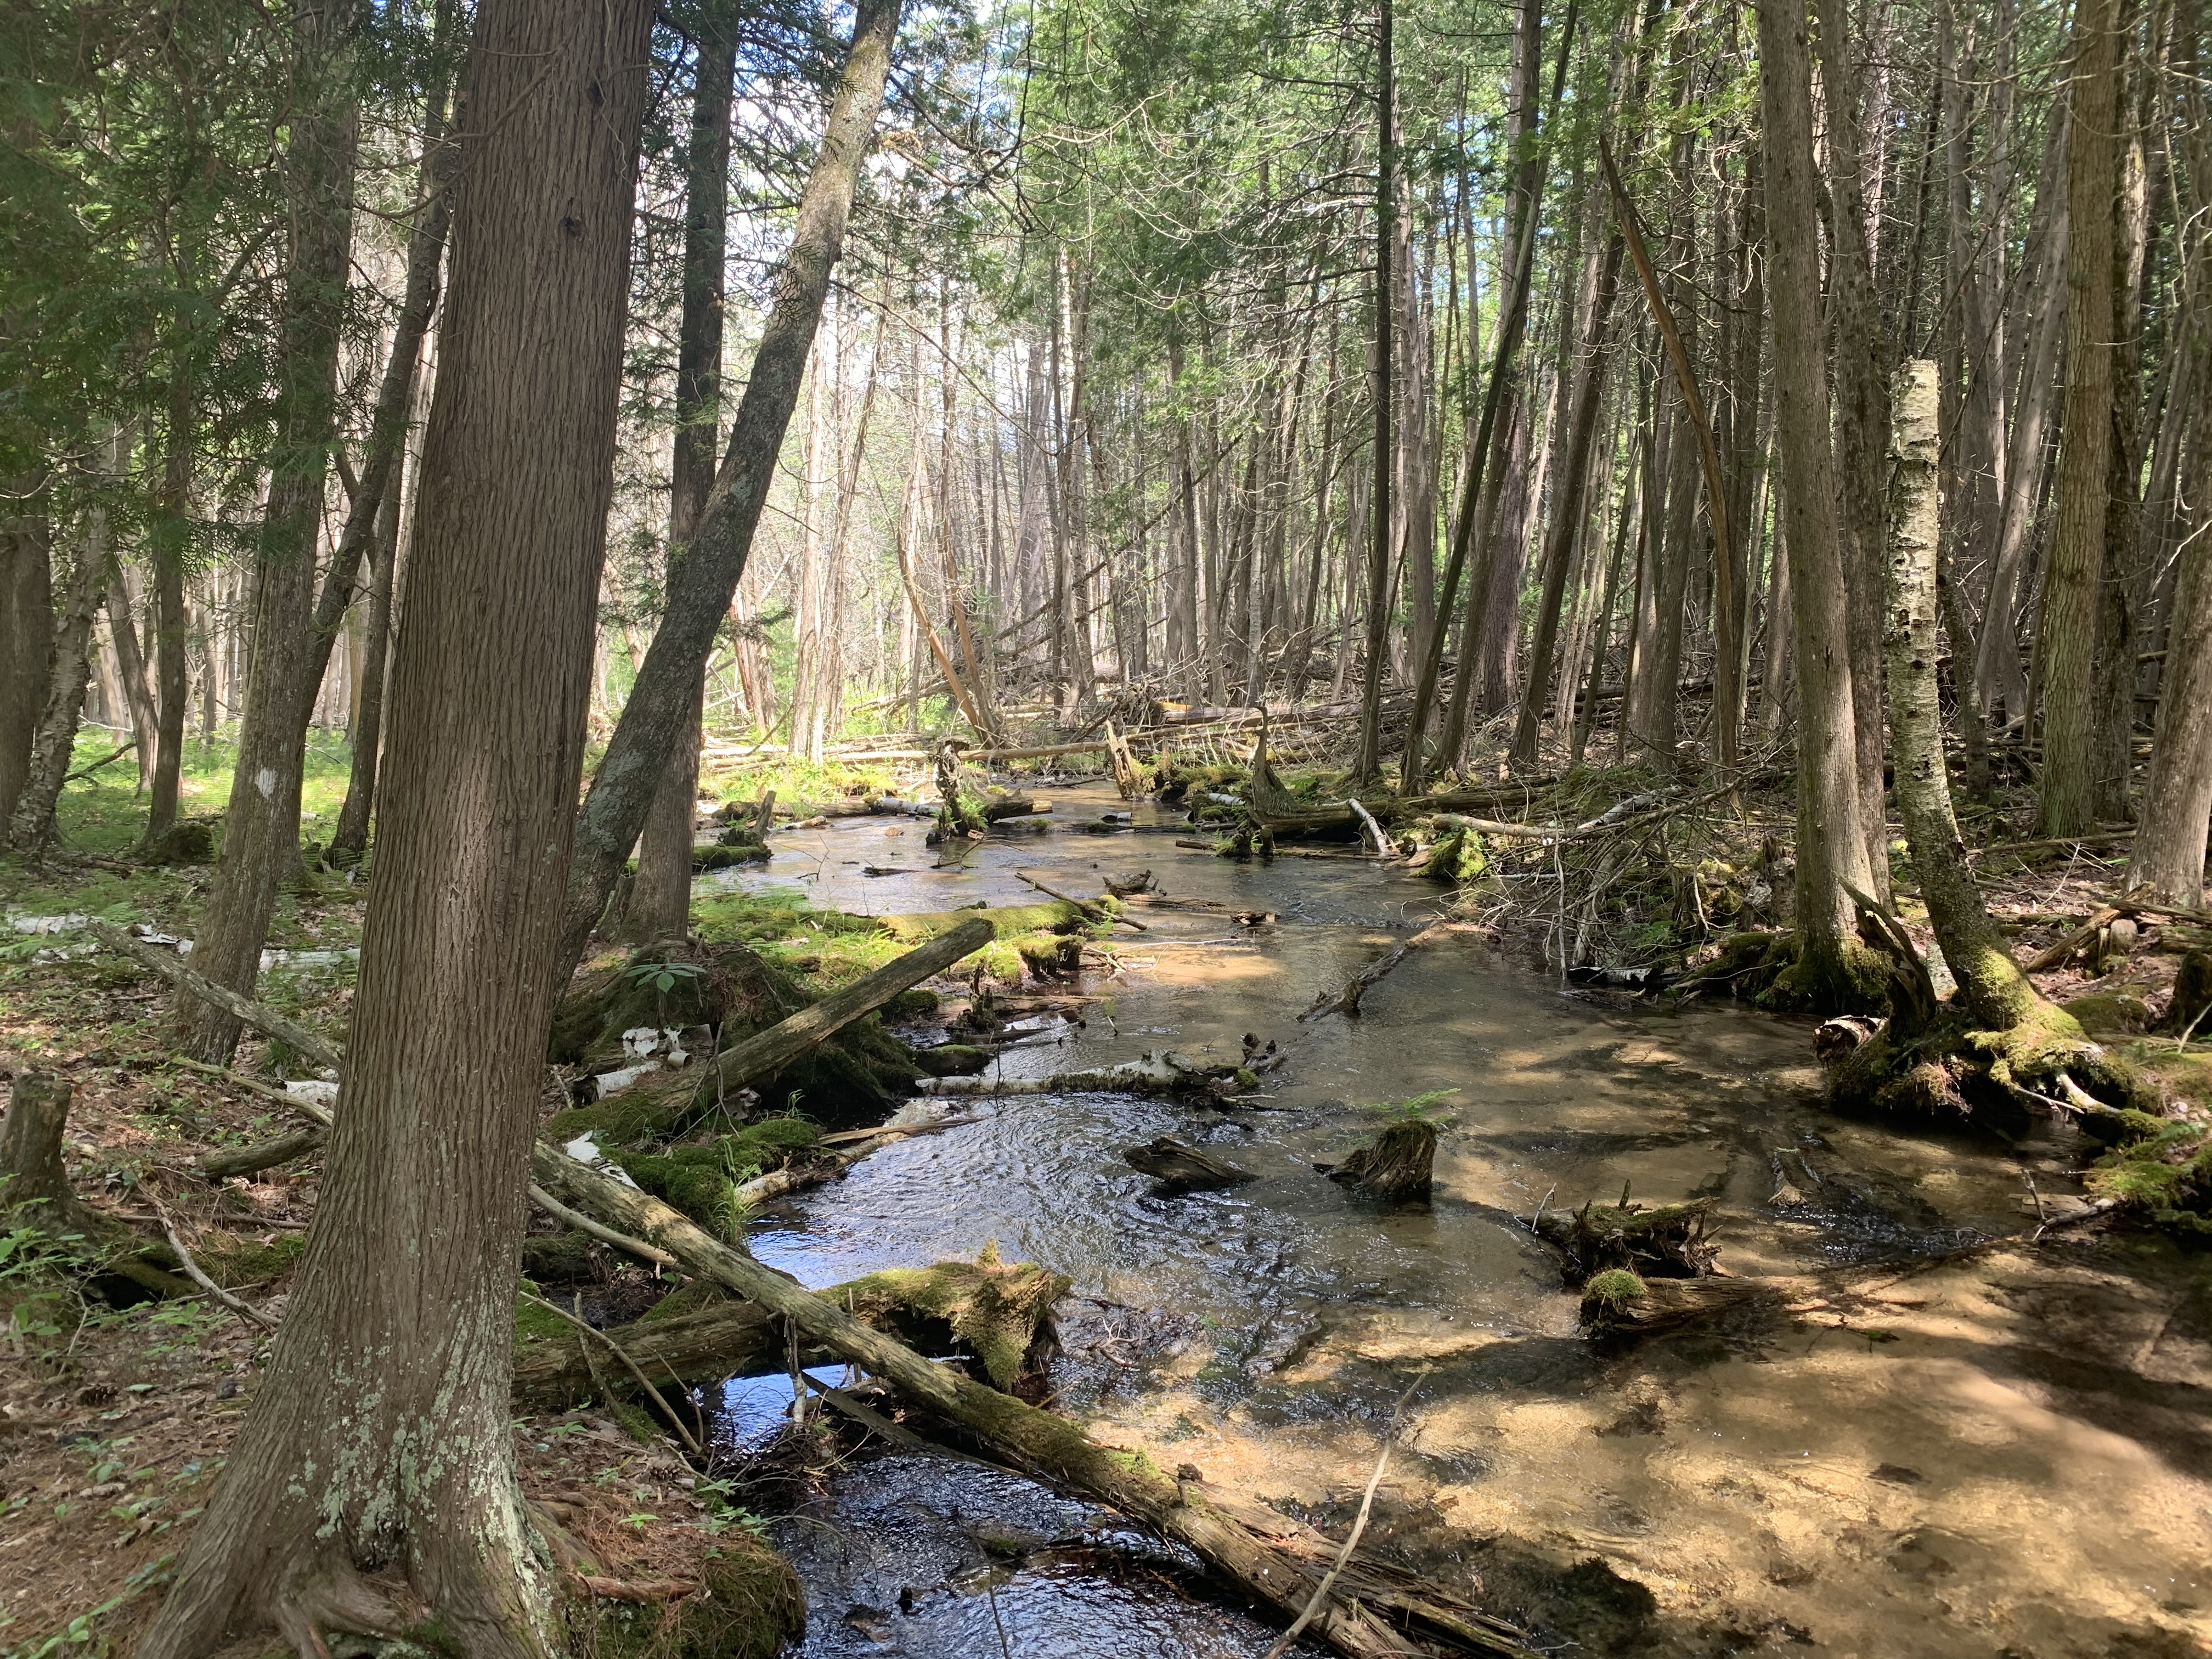 A cool canopy of northern white-cedar and cold, clear brookie waters